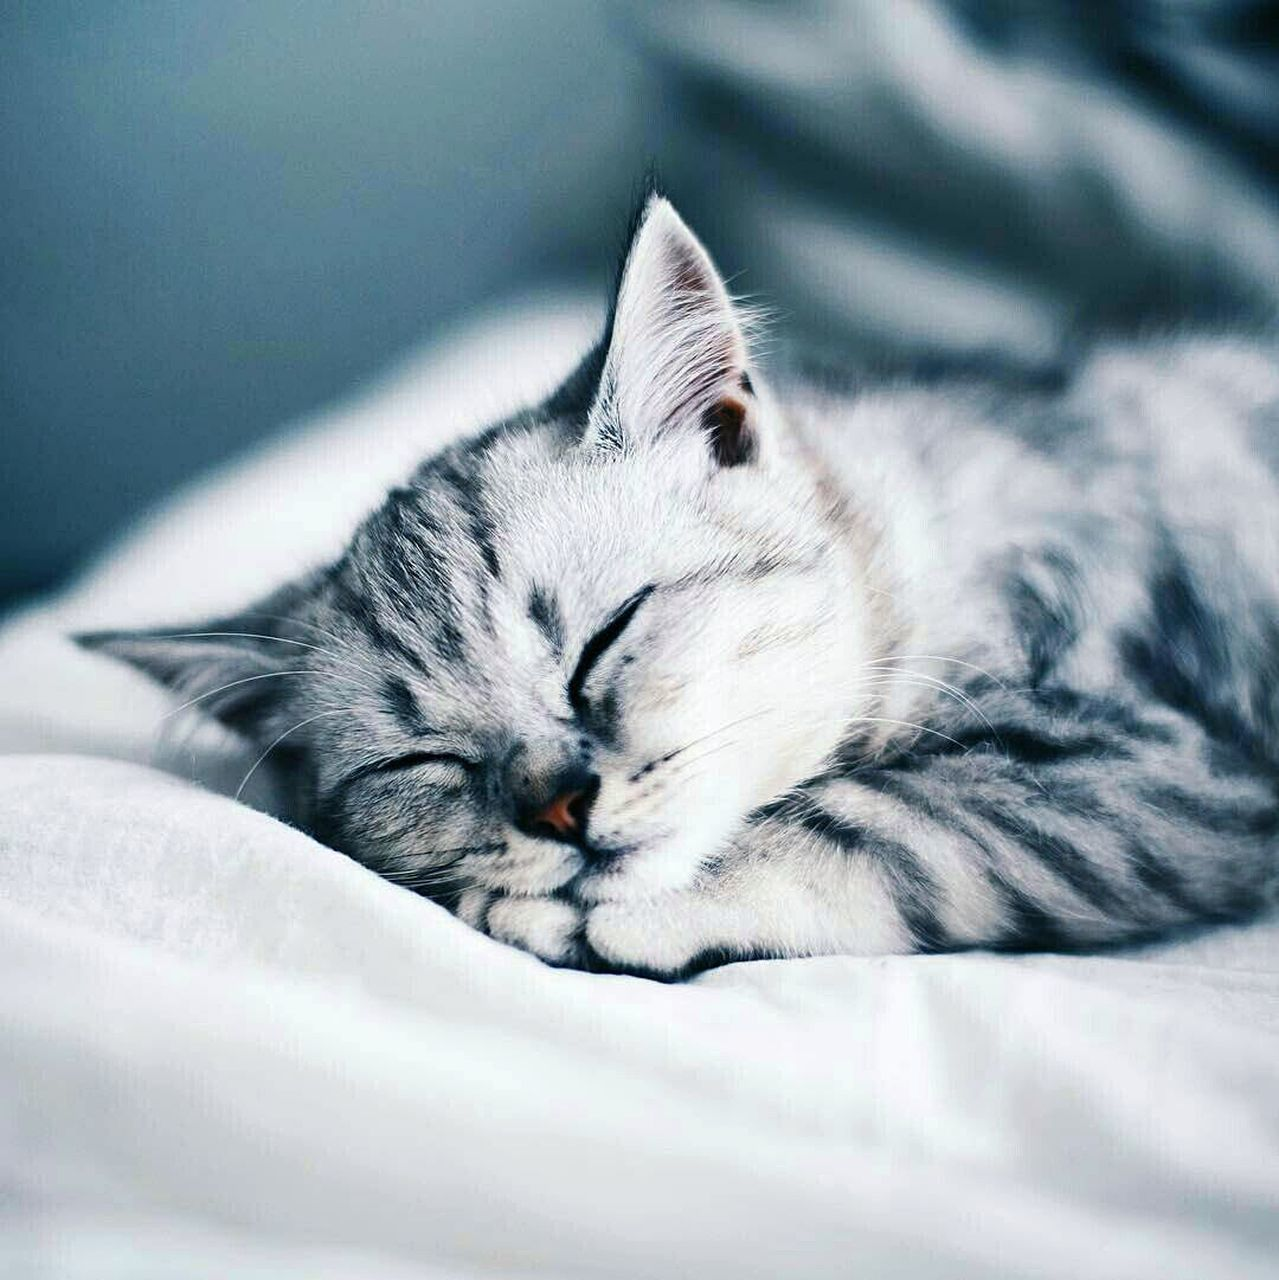 domestic cat, animal themes, one animal, domestic animals, lying down, pets, relaxation, no people, mammal, feline, sleeping, indoors, resting, eyes closed, bed, close-up, day